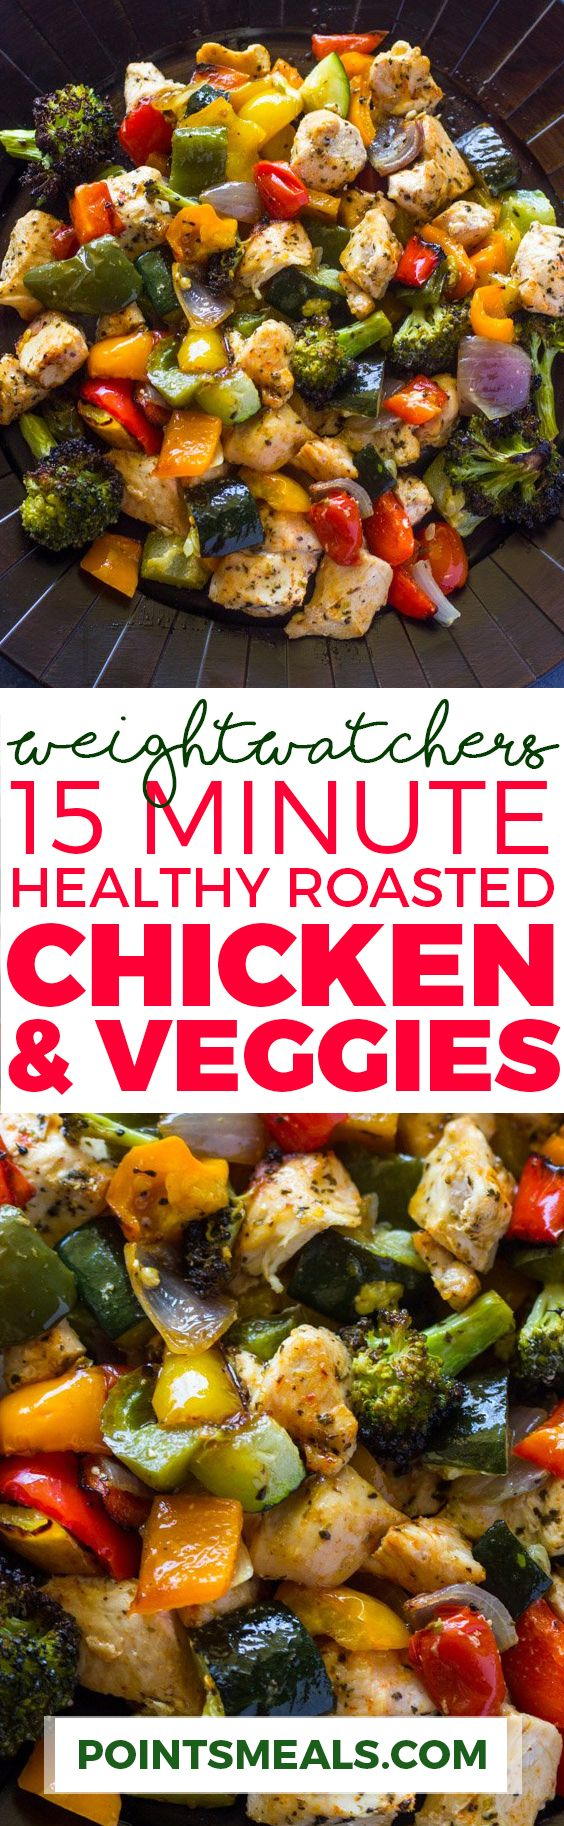 15 MINUTE HEALTHY ROASTED CHICKEN AND VEGGIES (WEIGHT WATCHERS SMARTPOINTS)